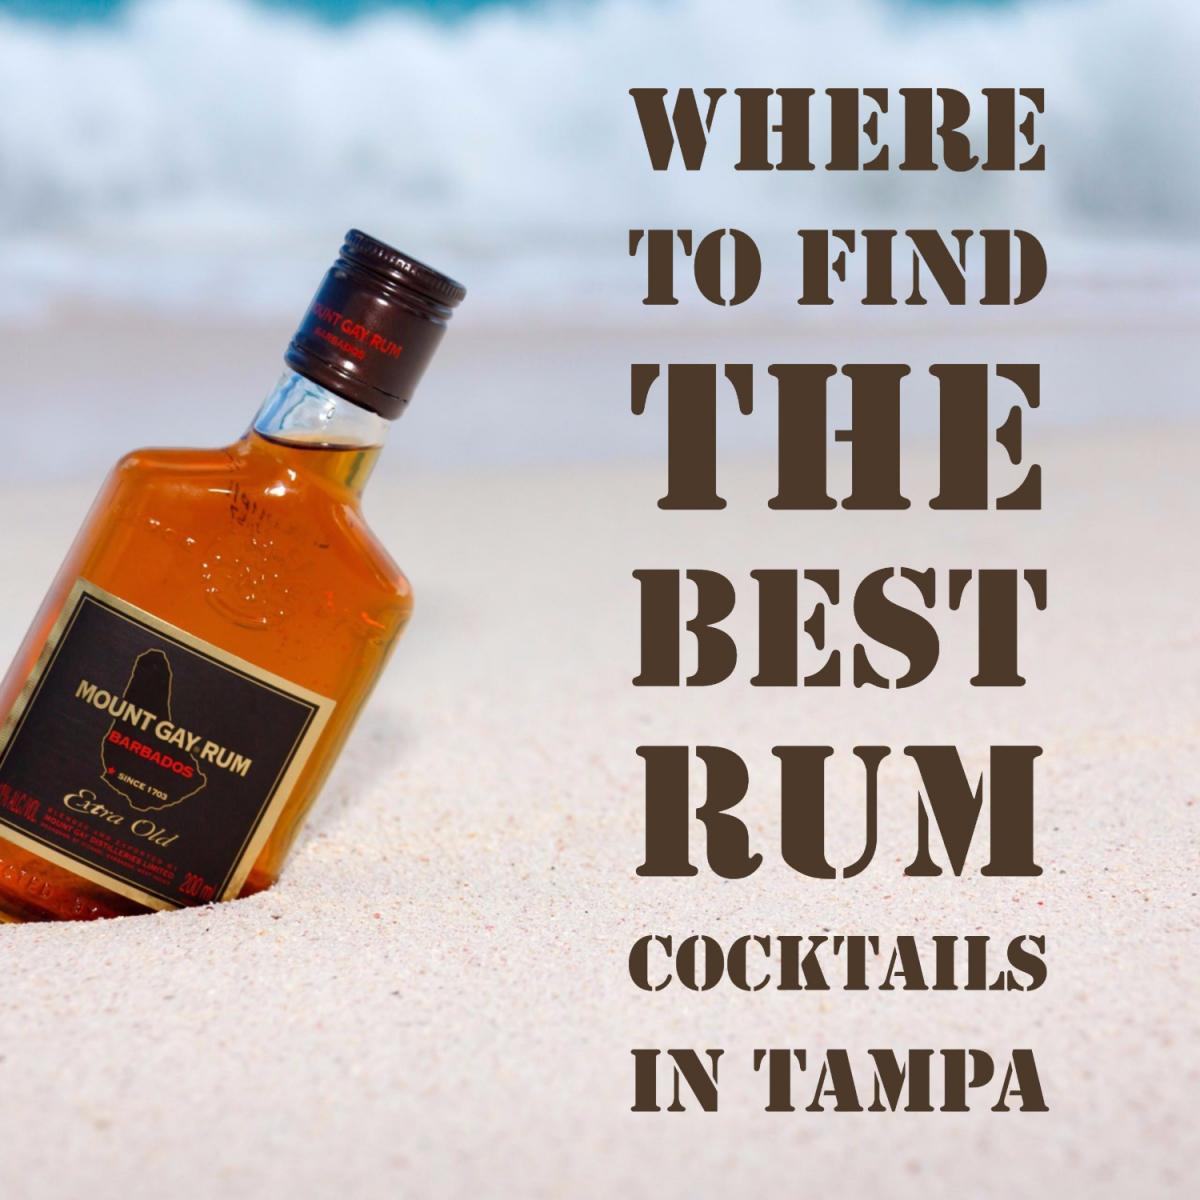 Where to Find the Best Rum Cocktails in Tampa